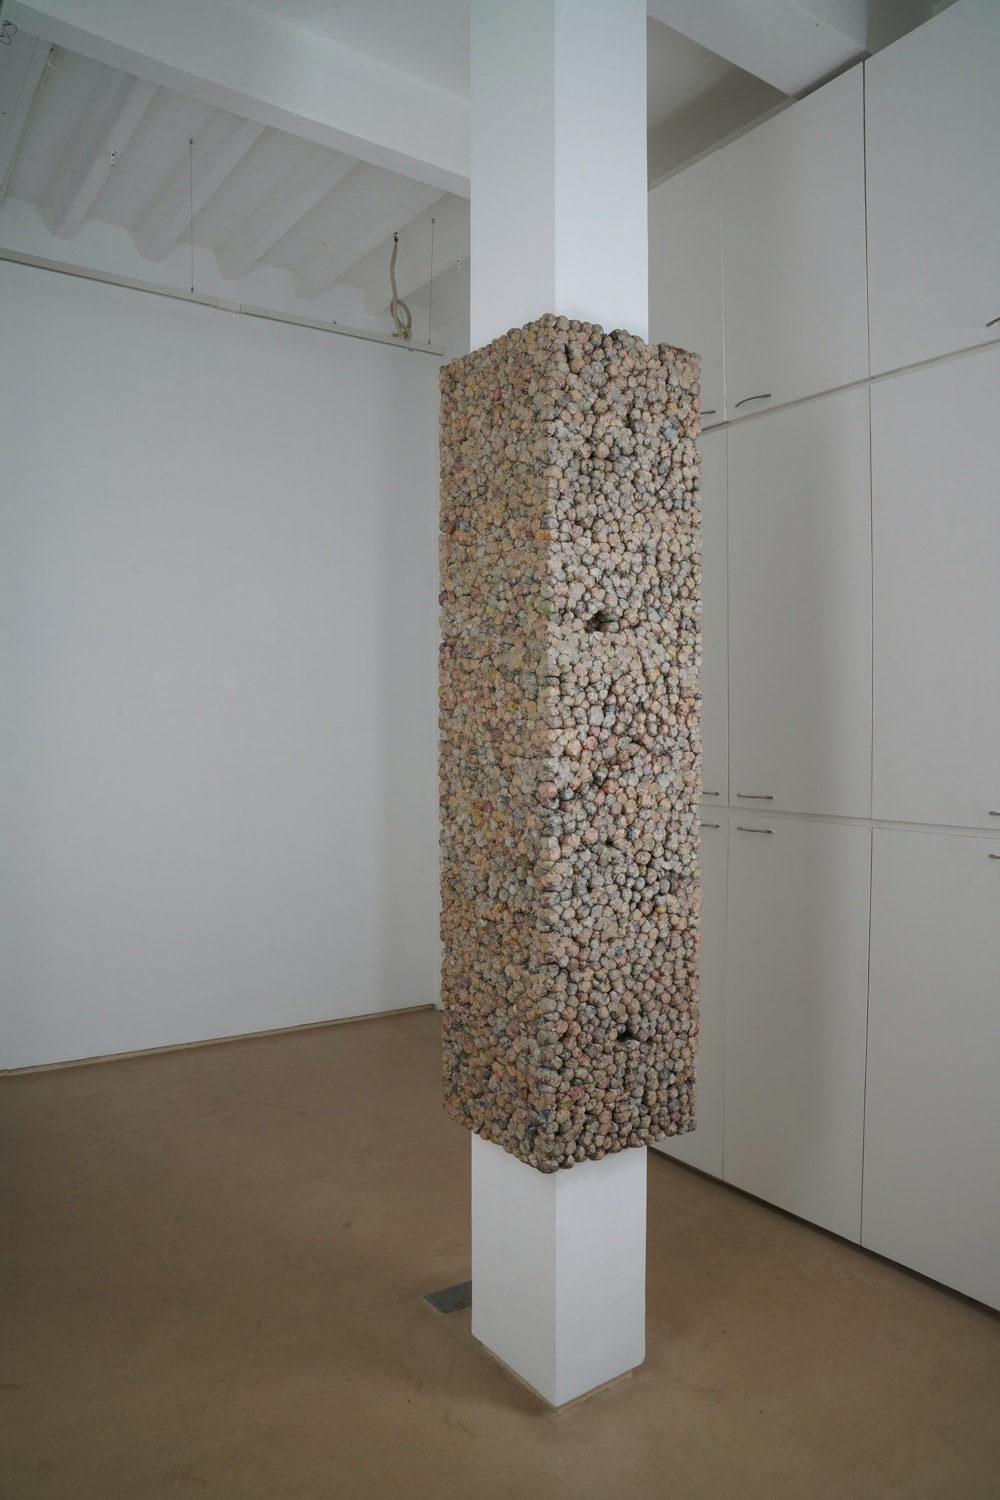 Manish Nai, Paper City and Ghost Modernity